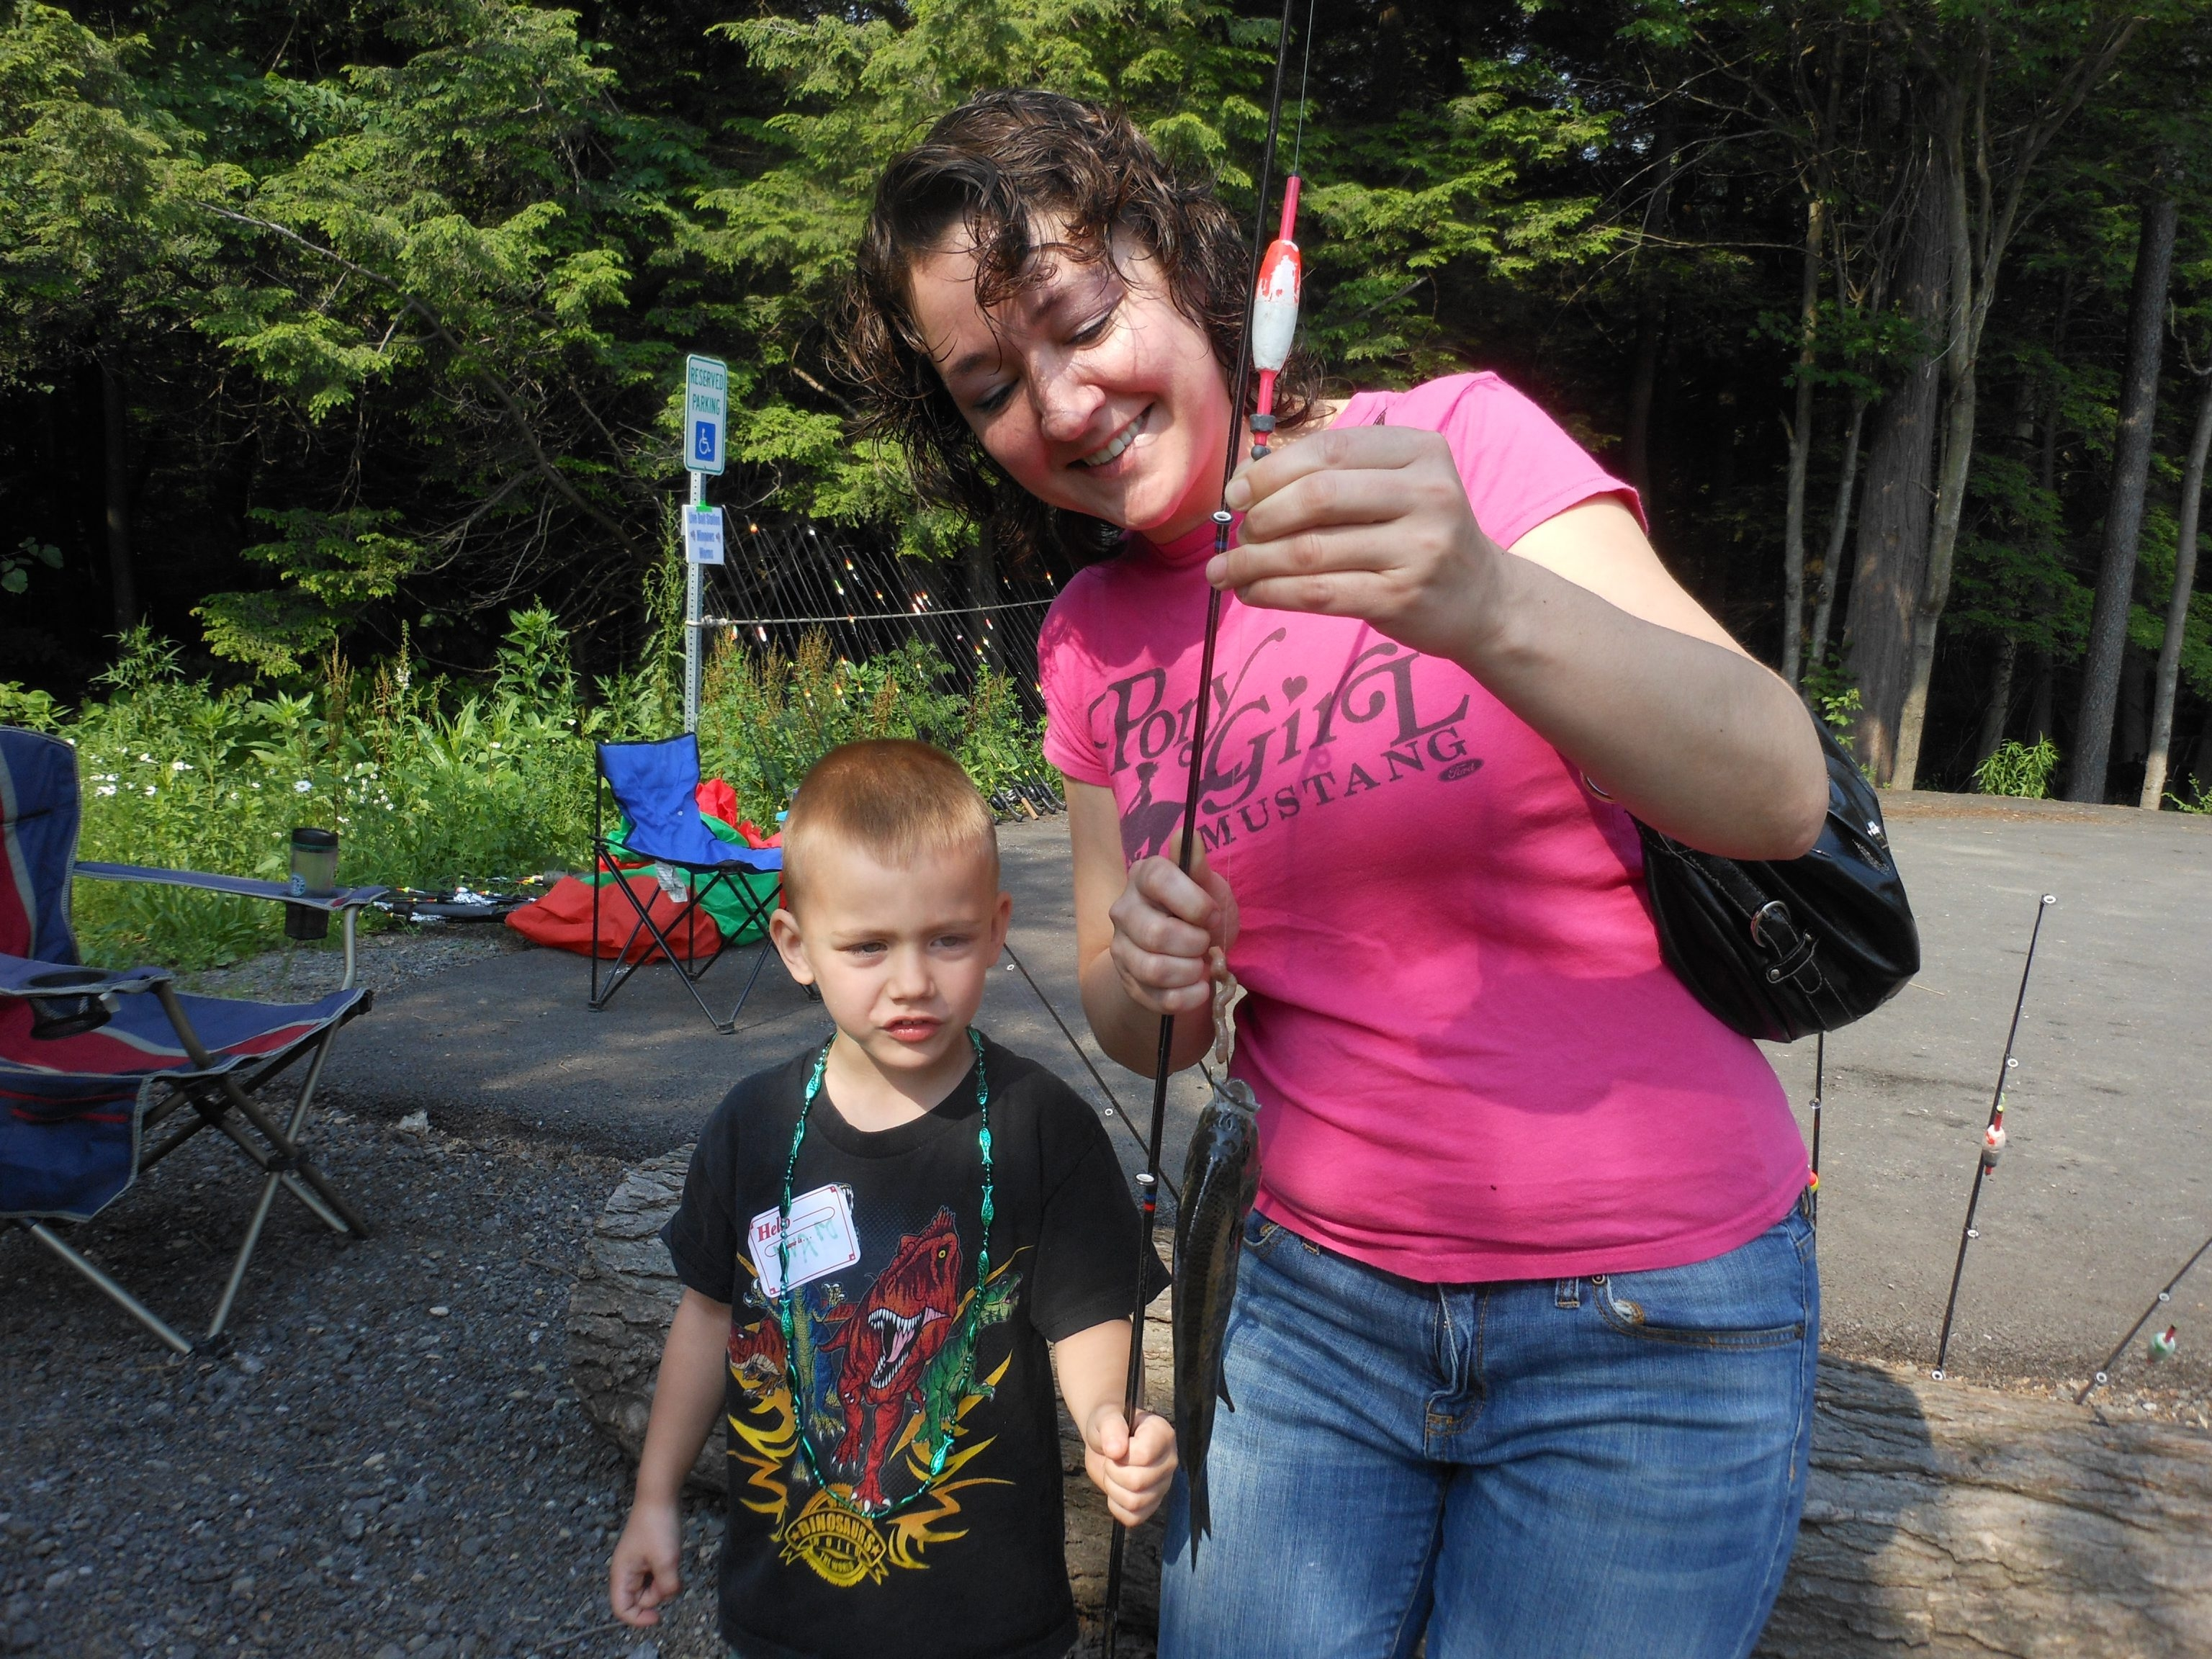 Edward Hajduk, age 4, of Buffalo shows his mom, Mary Hajduk, a big bluegill he caught at the start of a kids fishing day at Chestnut Ridge Park.